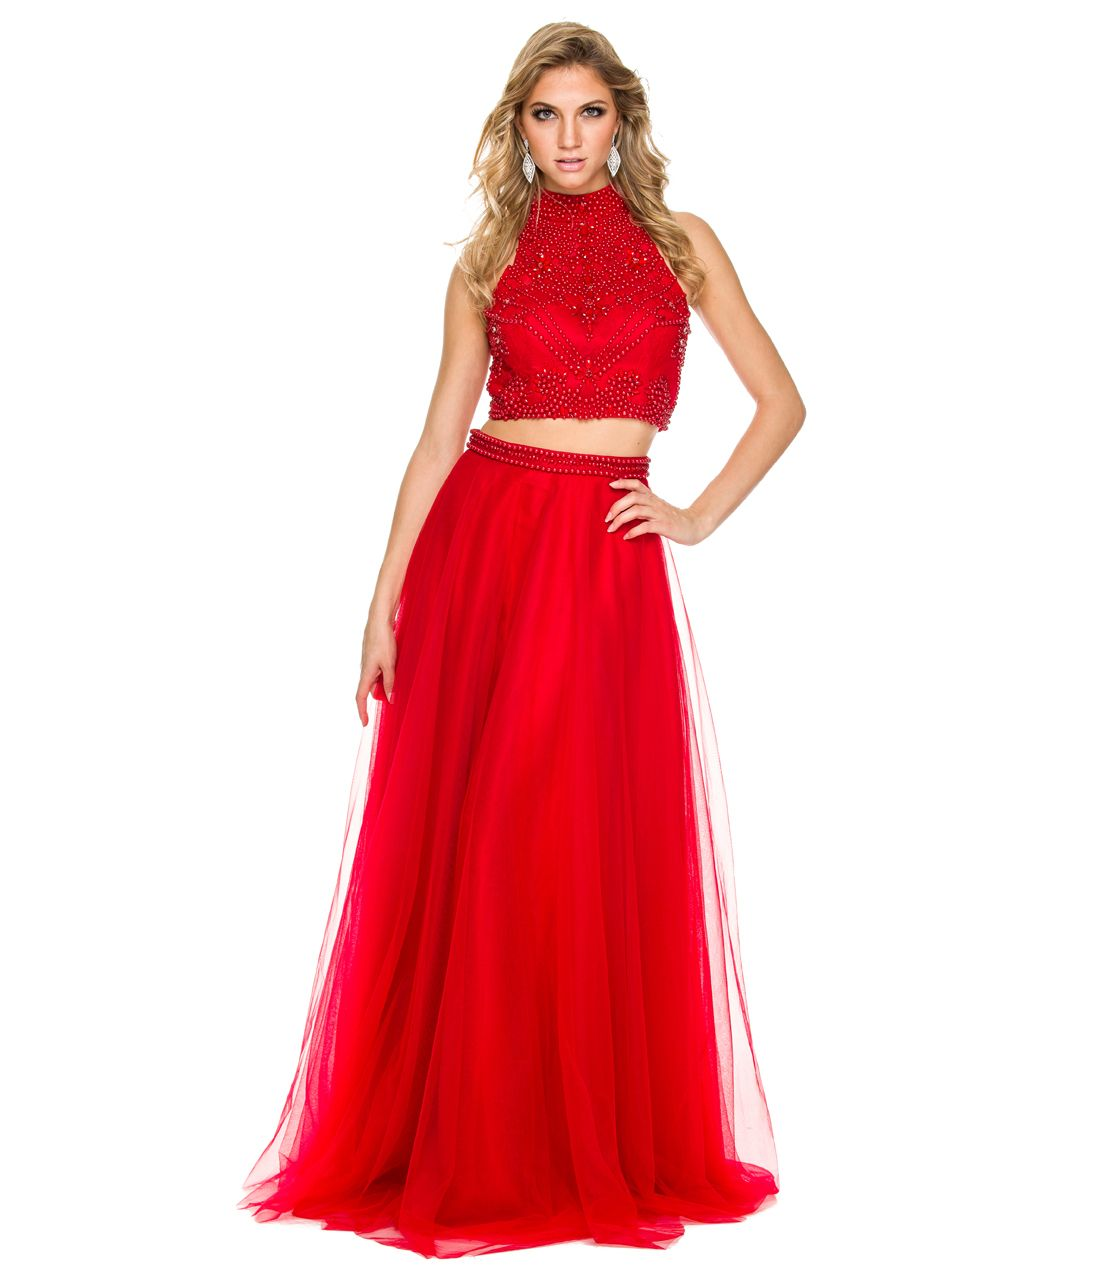 Ravishing in red this long two piece dress has a beaded halter crop